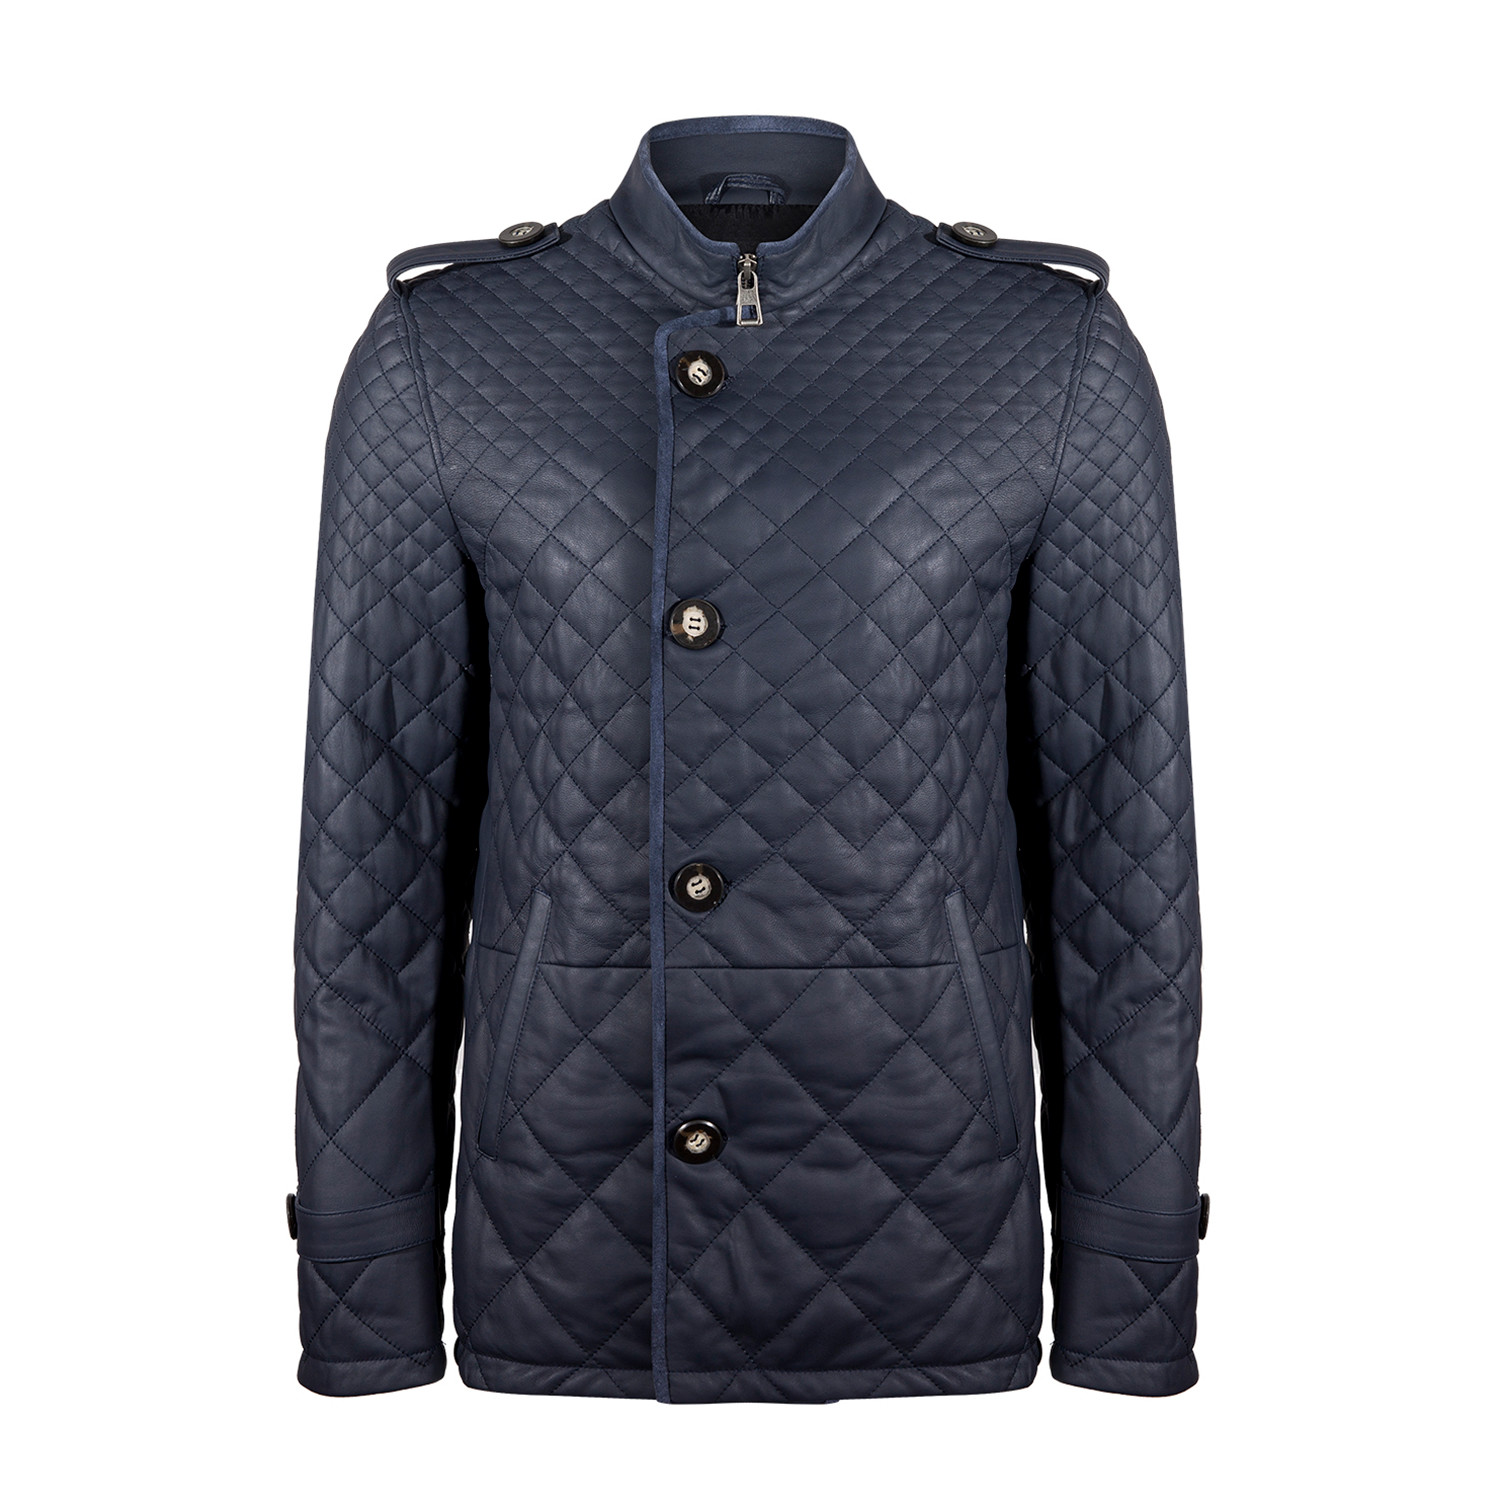 Mert Leather Jacket Navy Blue M Winter Clearance Apparel